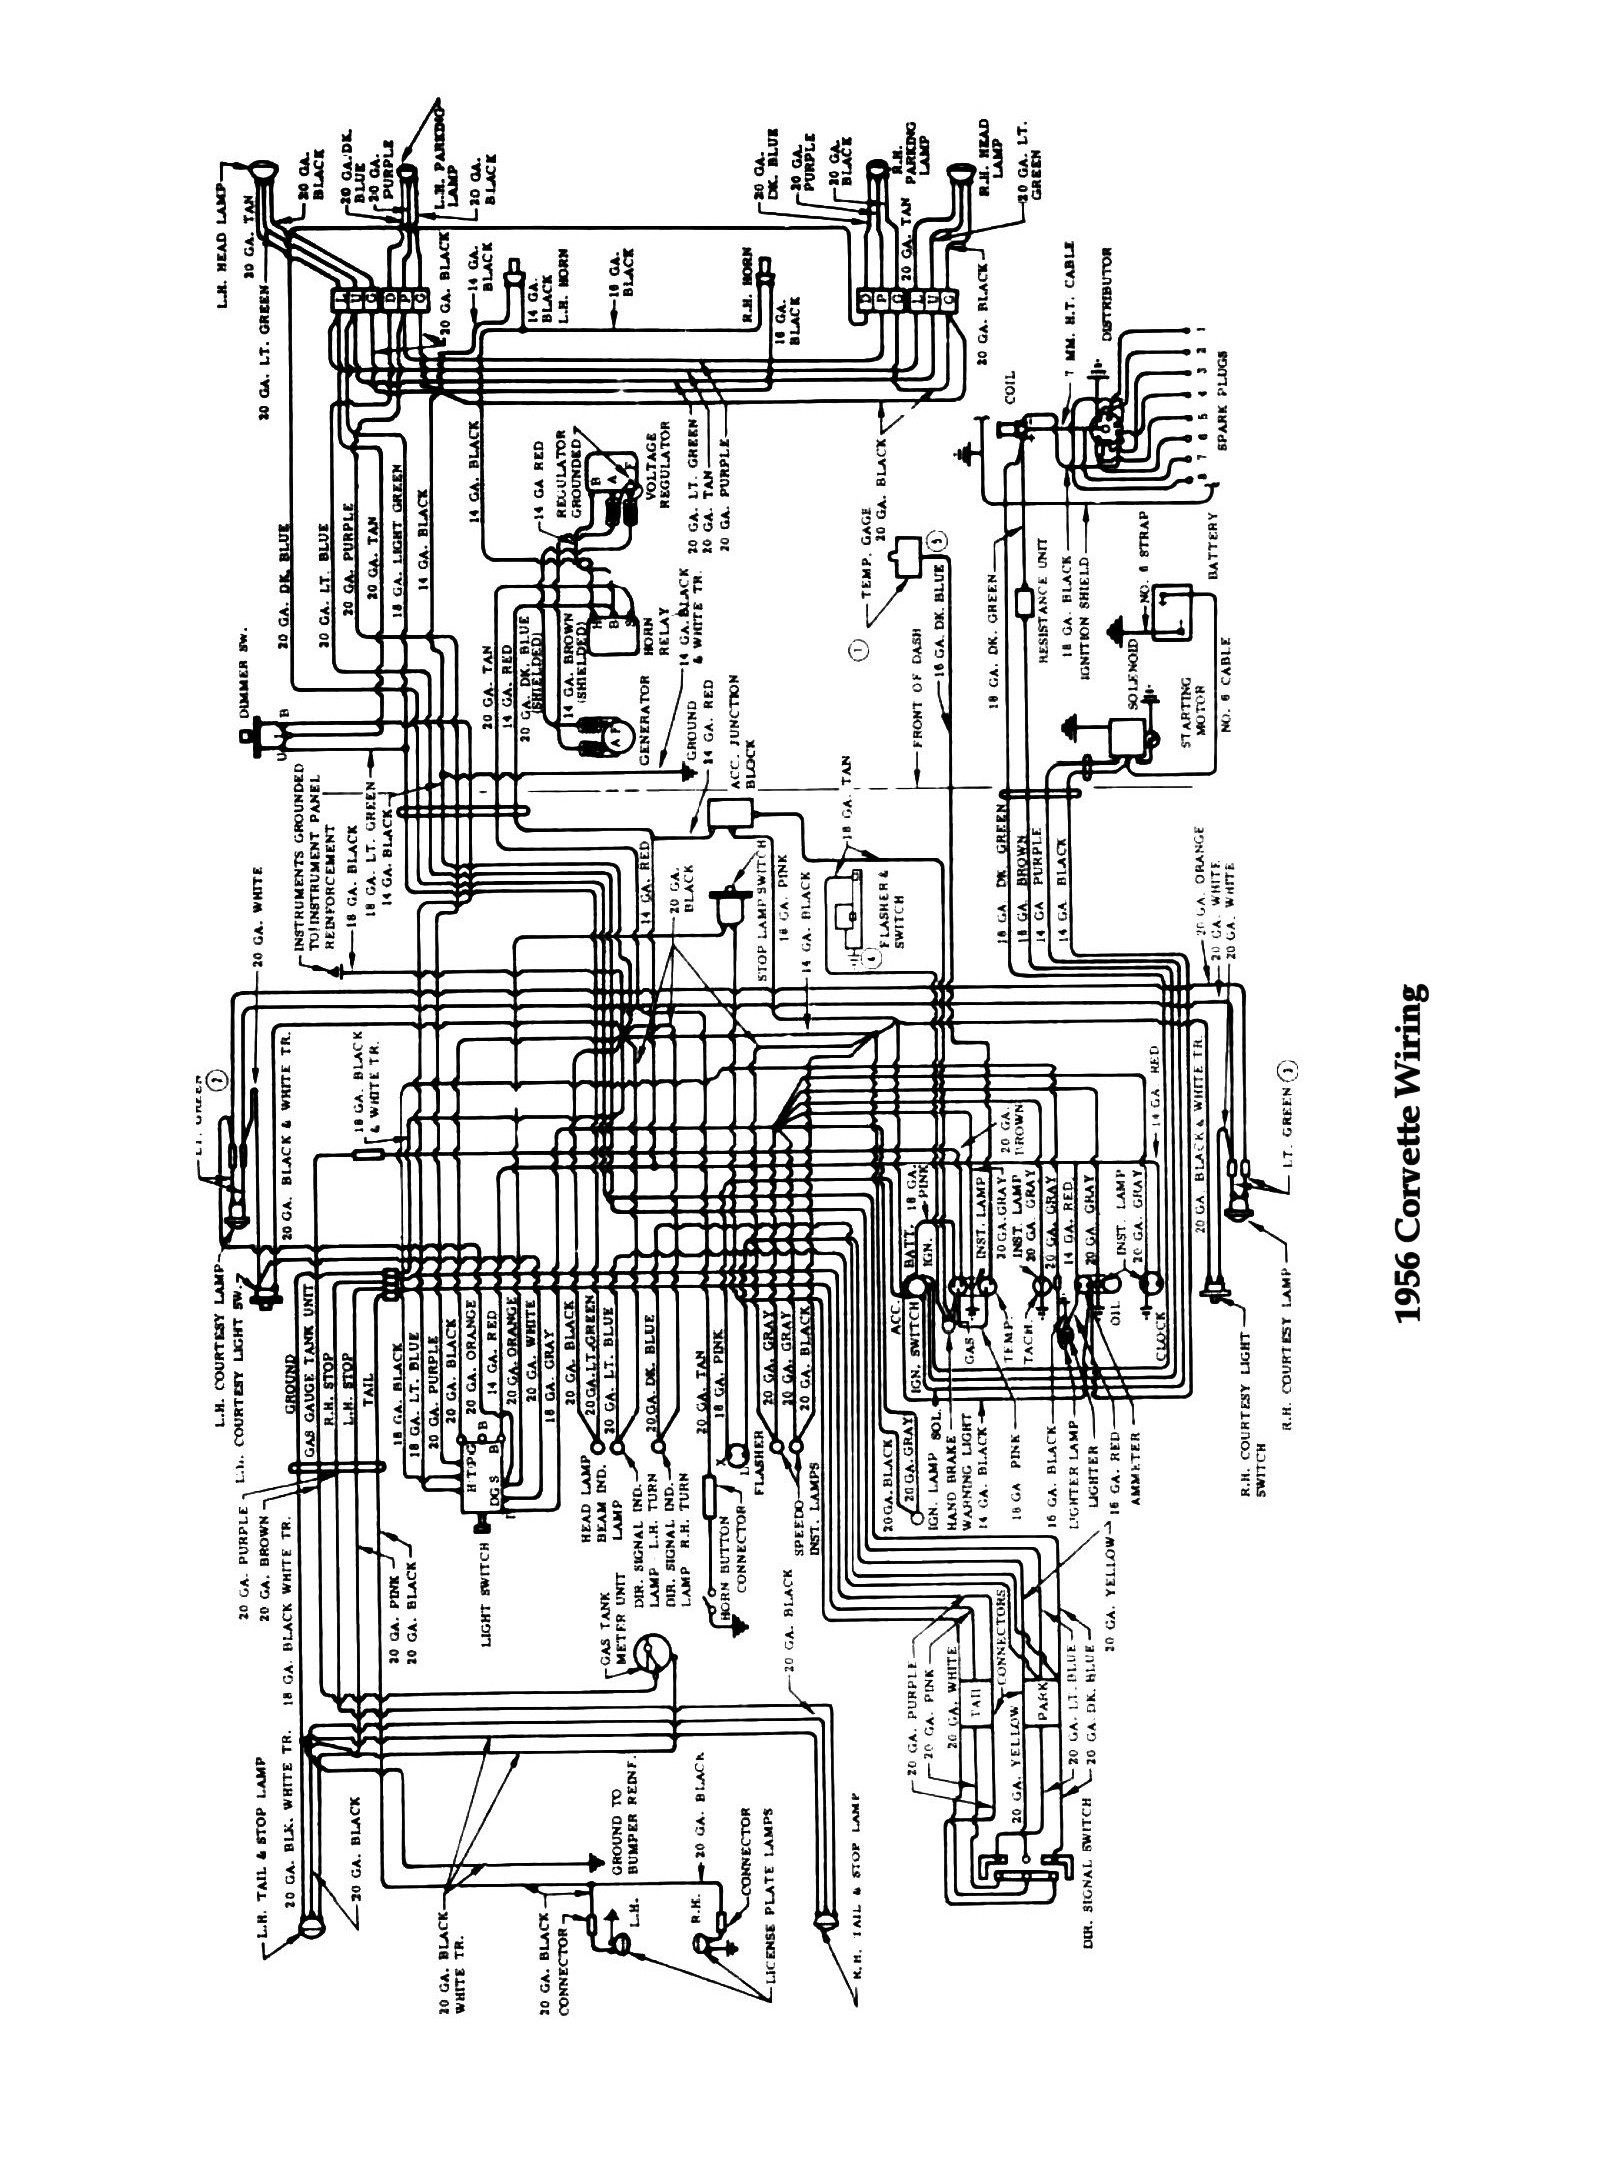 56corvette chevy wiring diagrams 1984 corvette wiring diagram schematic at virtualis.co